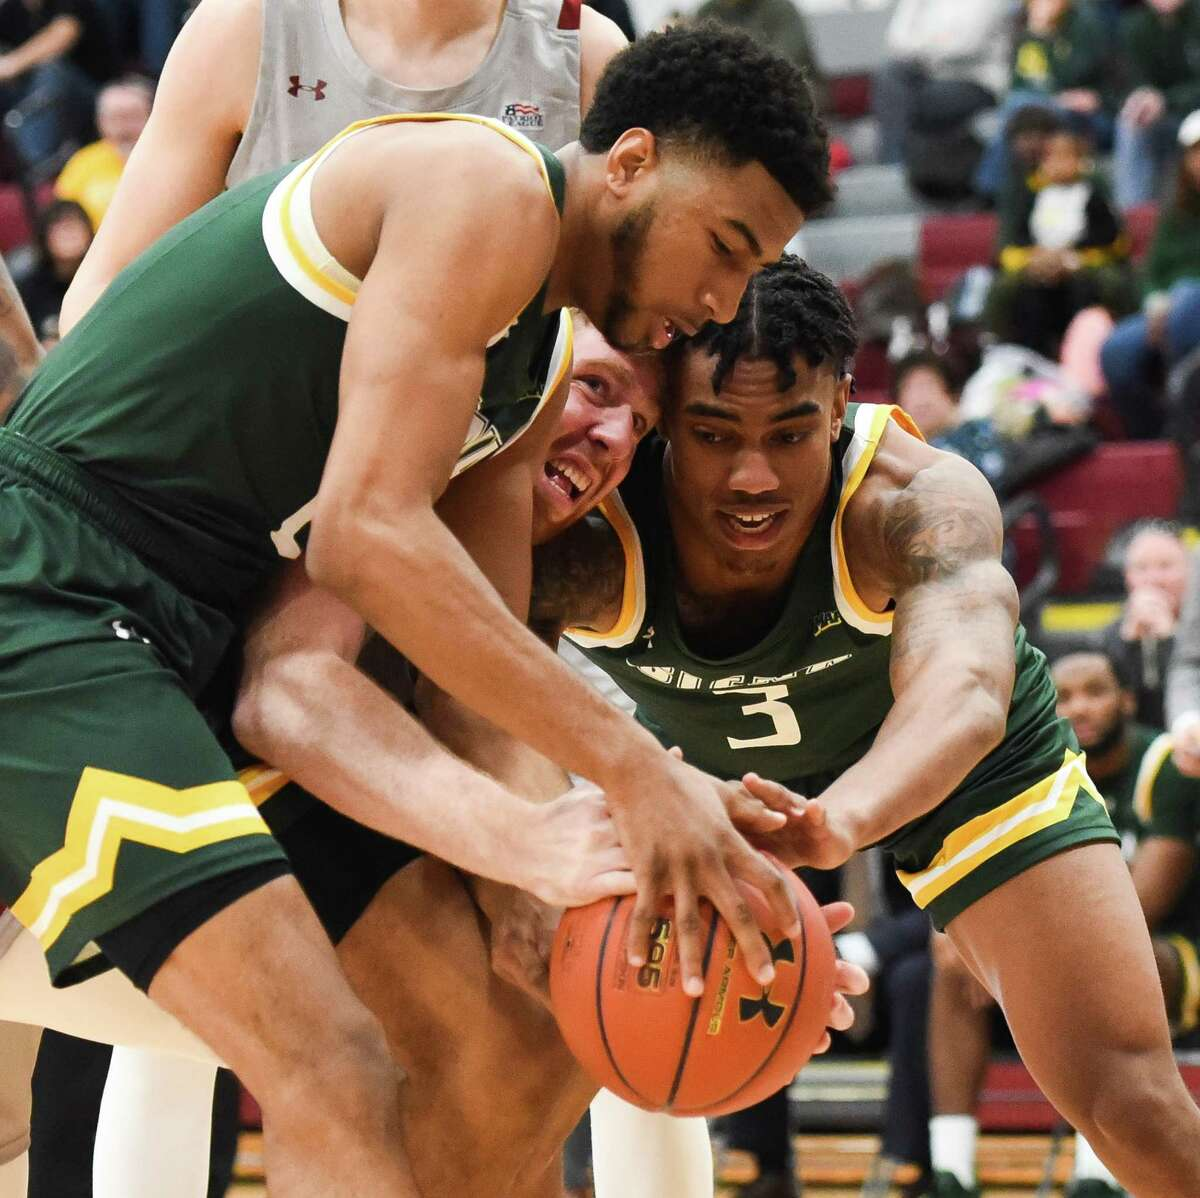 Colgate player Will Rayman, center, fights for control of the ball with multiple Siena defenders on Saturday, Nov. 30, 2019 at Colgate University. Colgate won 72-62. (Alex Cooper / Utica Observer-Dispatch)